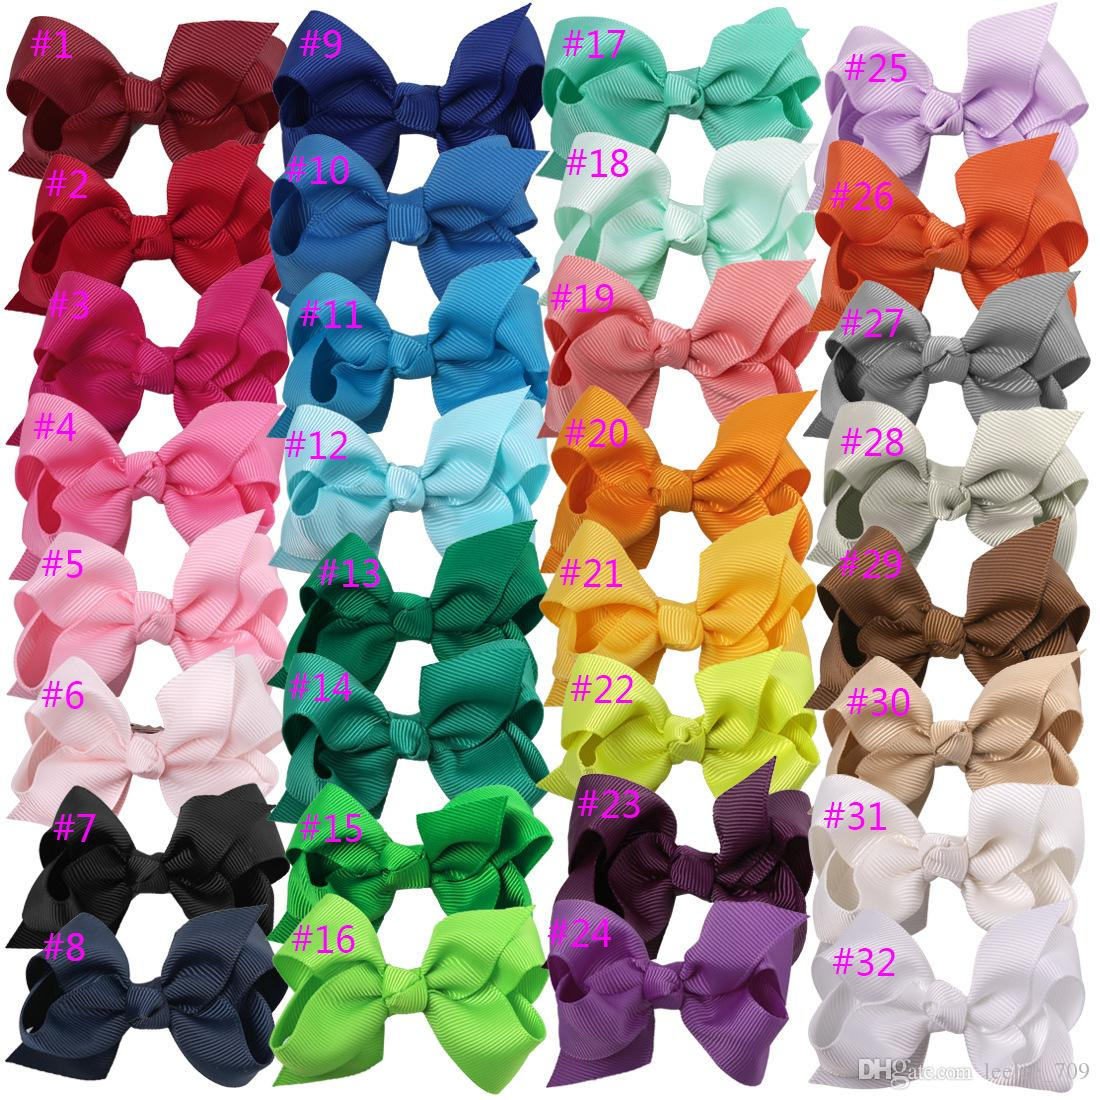 100pcs hot sale Korean 3 INCH Grosgrain Ribbon Hairbows Baby Girl Accessories With Clip Boutique Hair Bows Hairpins Hair ties 31colors